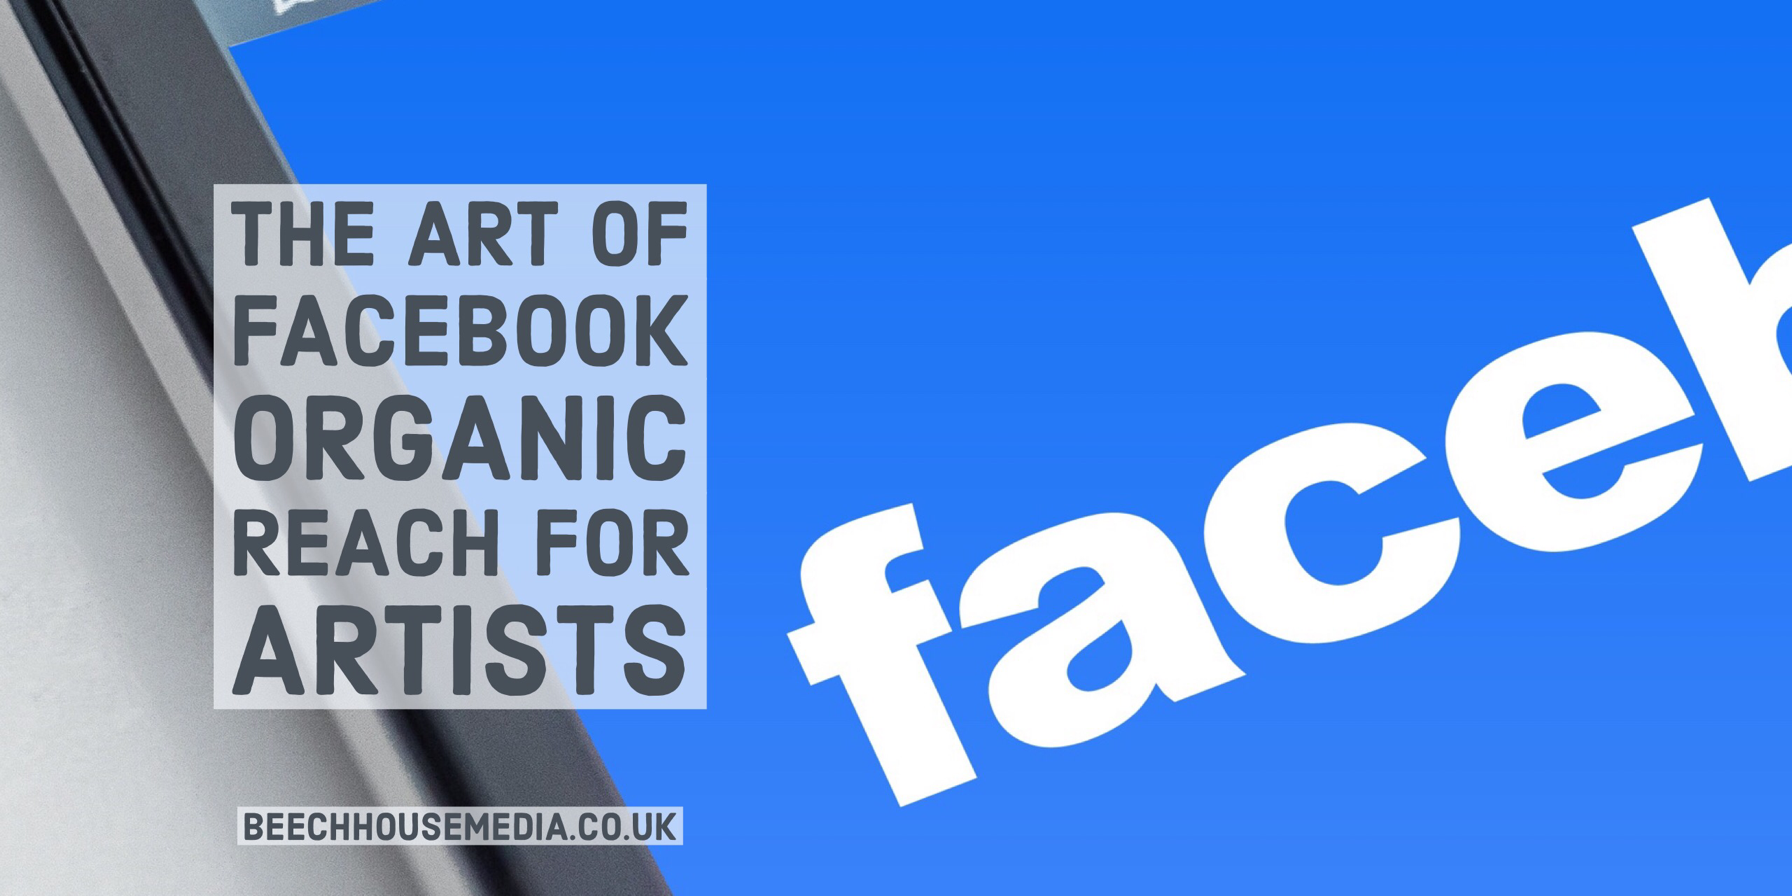 the Art of Facebook Organic Reach for Artists